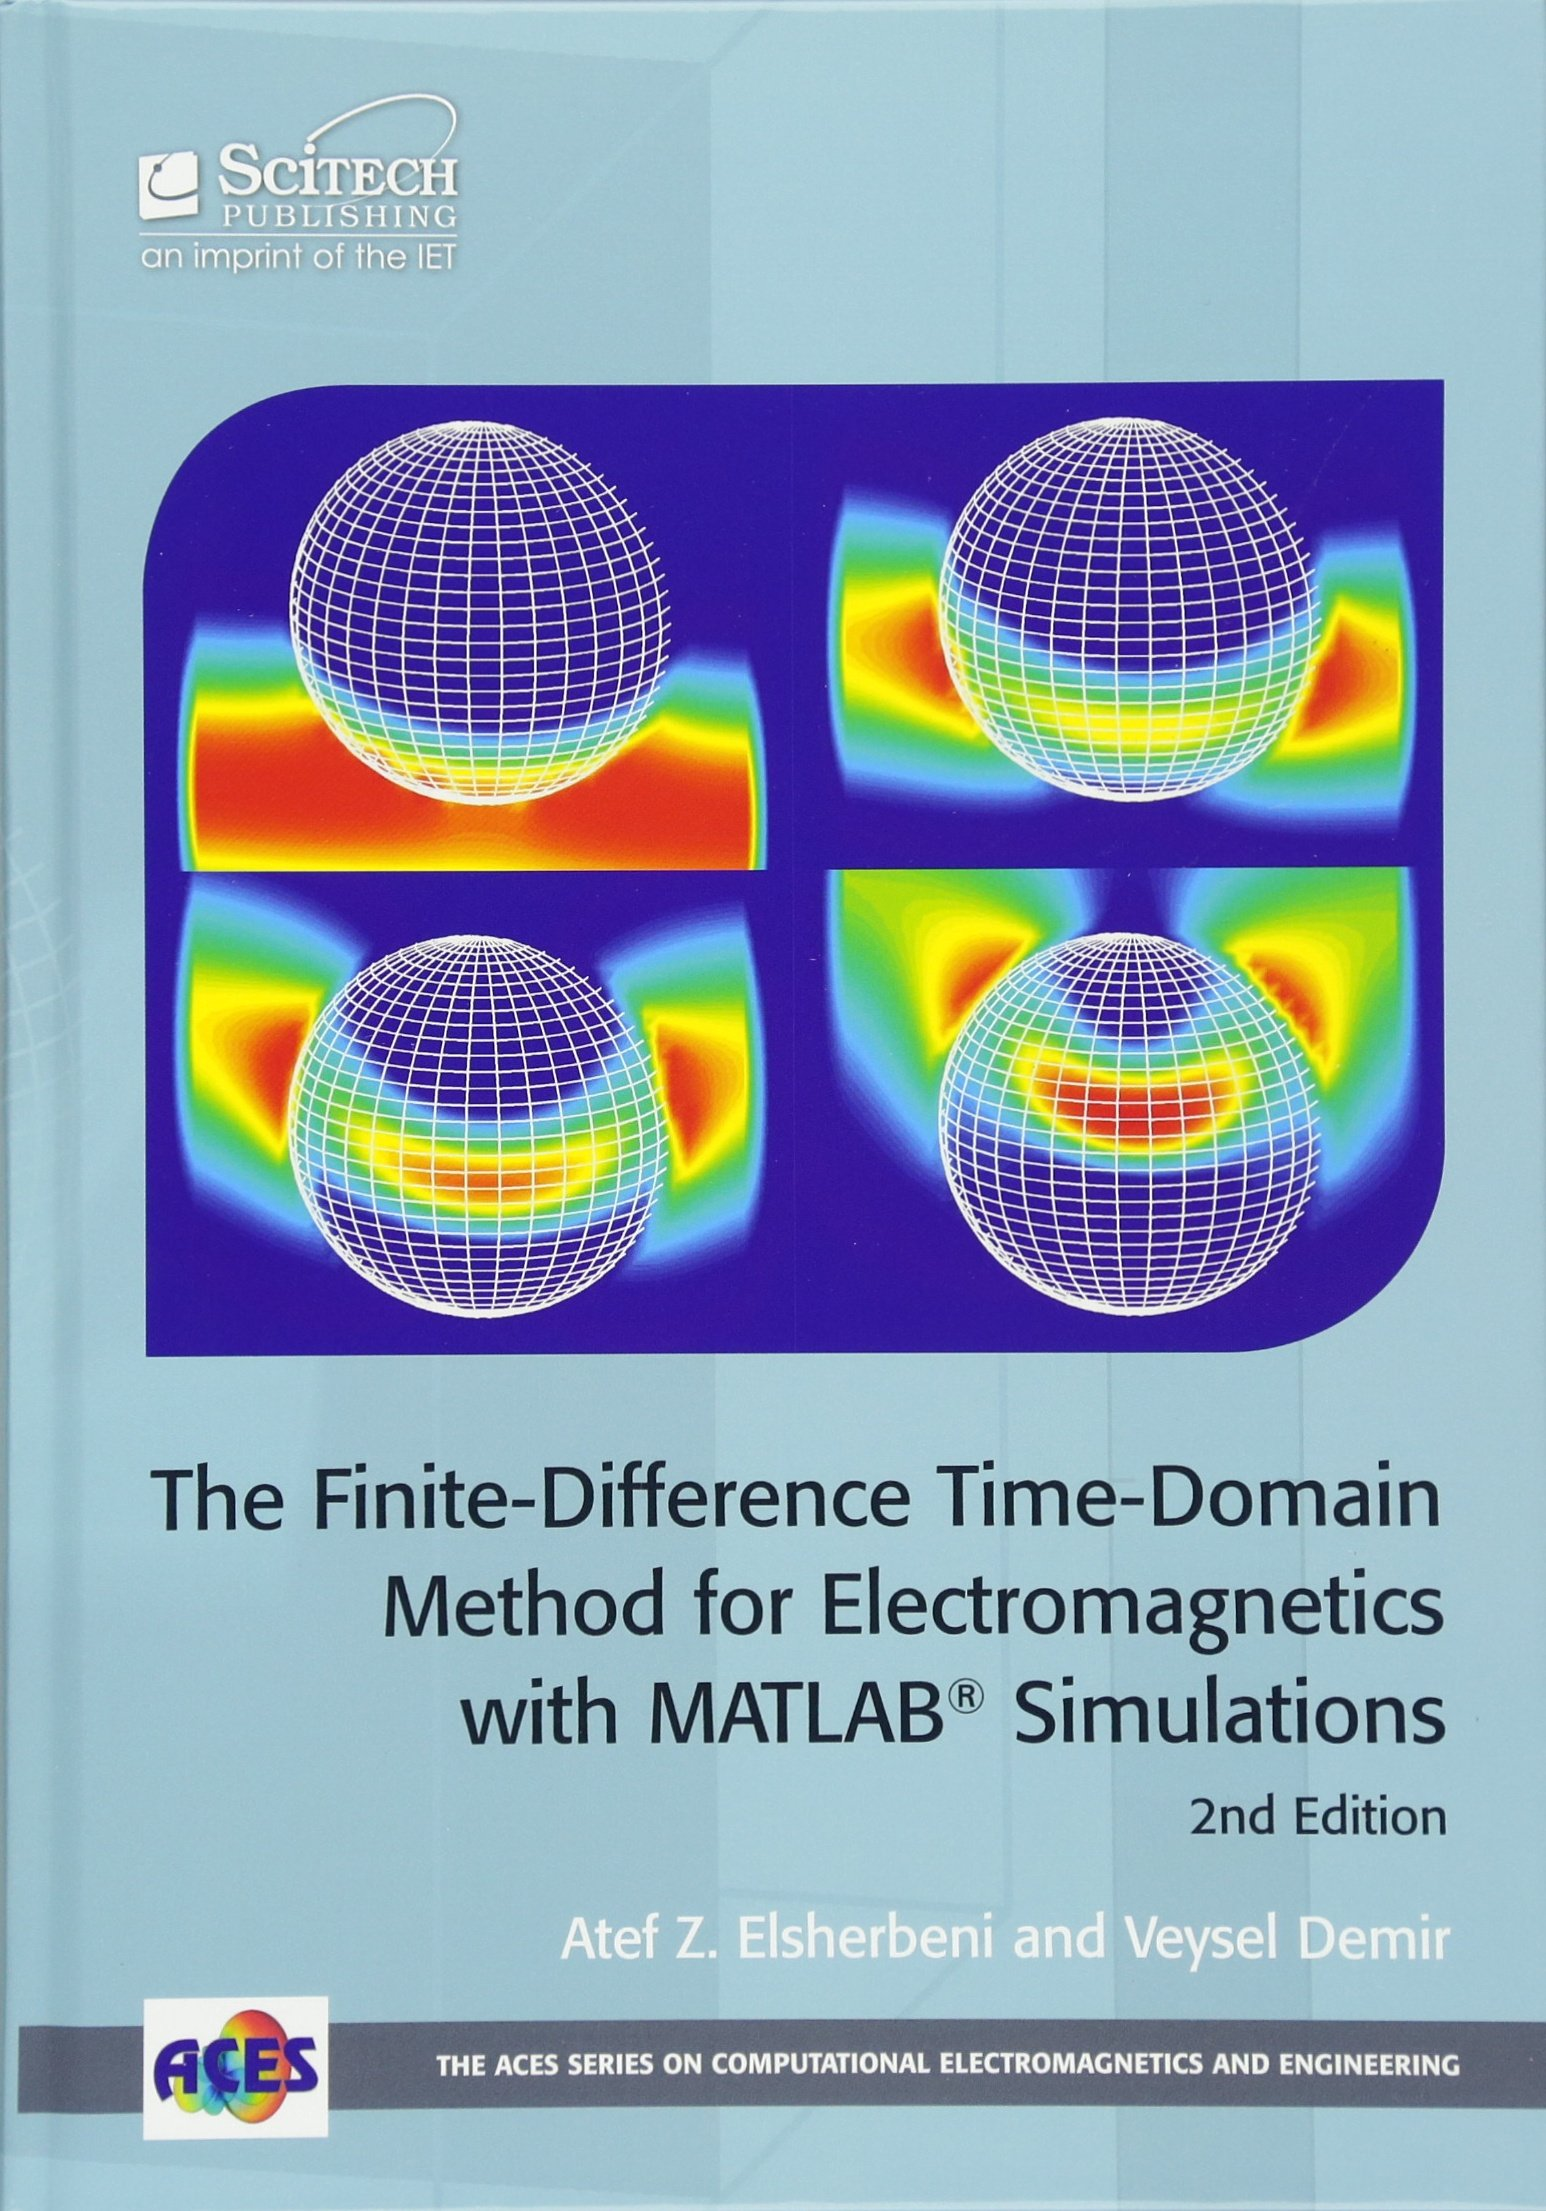 Amazon fr - The Finite-Difference Time-Domain Method for